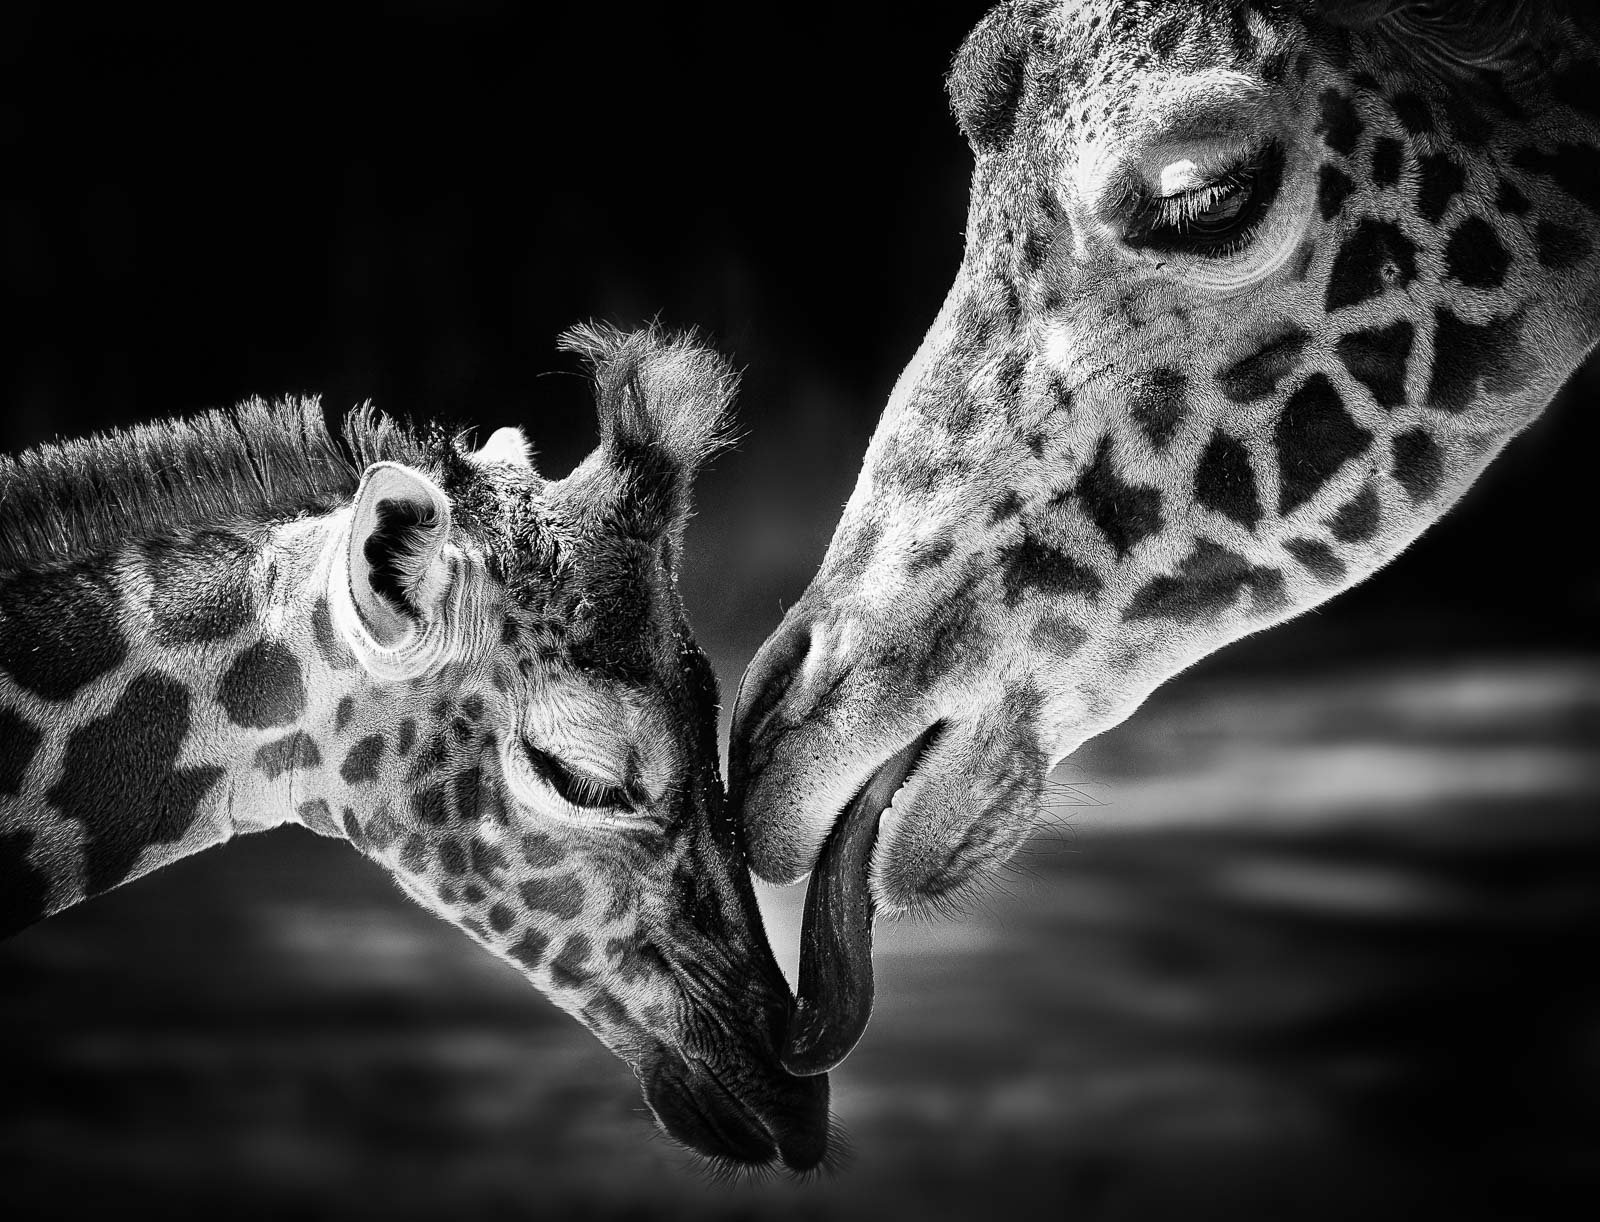 mother giraffe kissing baby giraffe